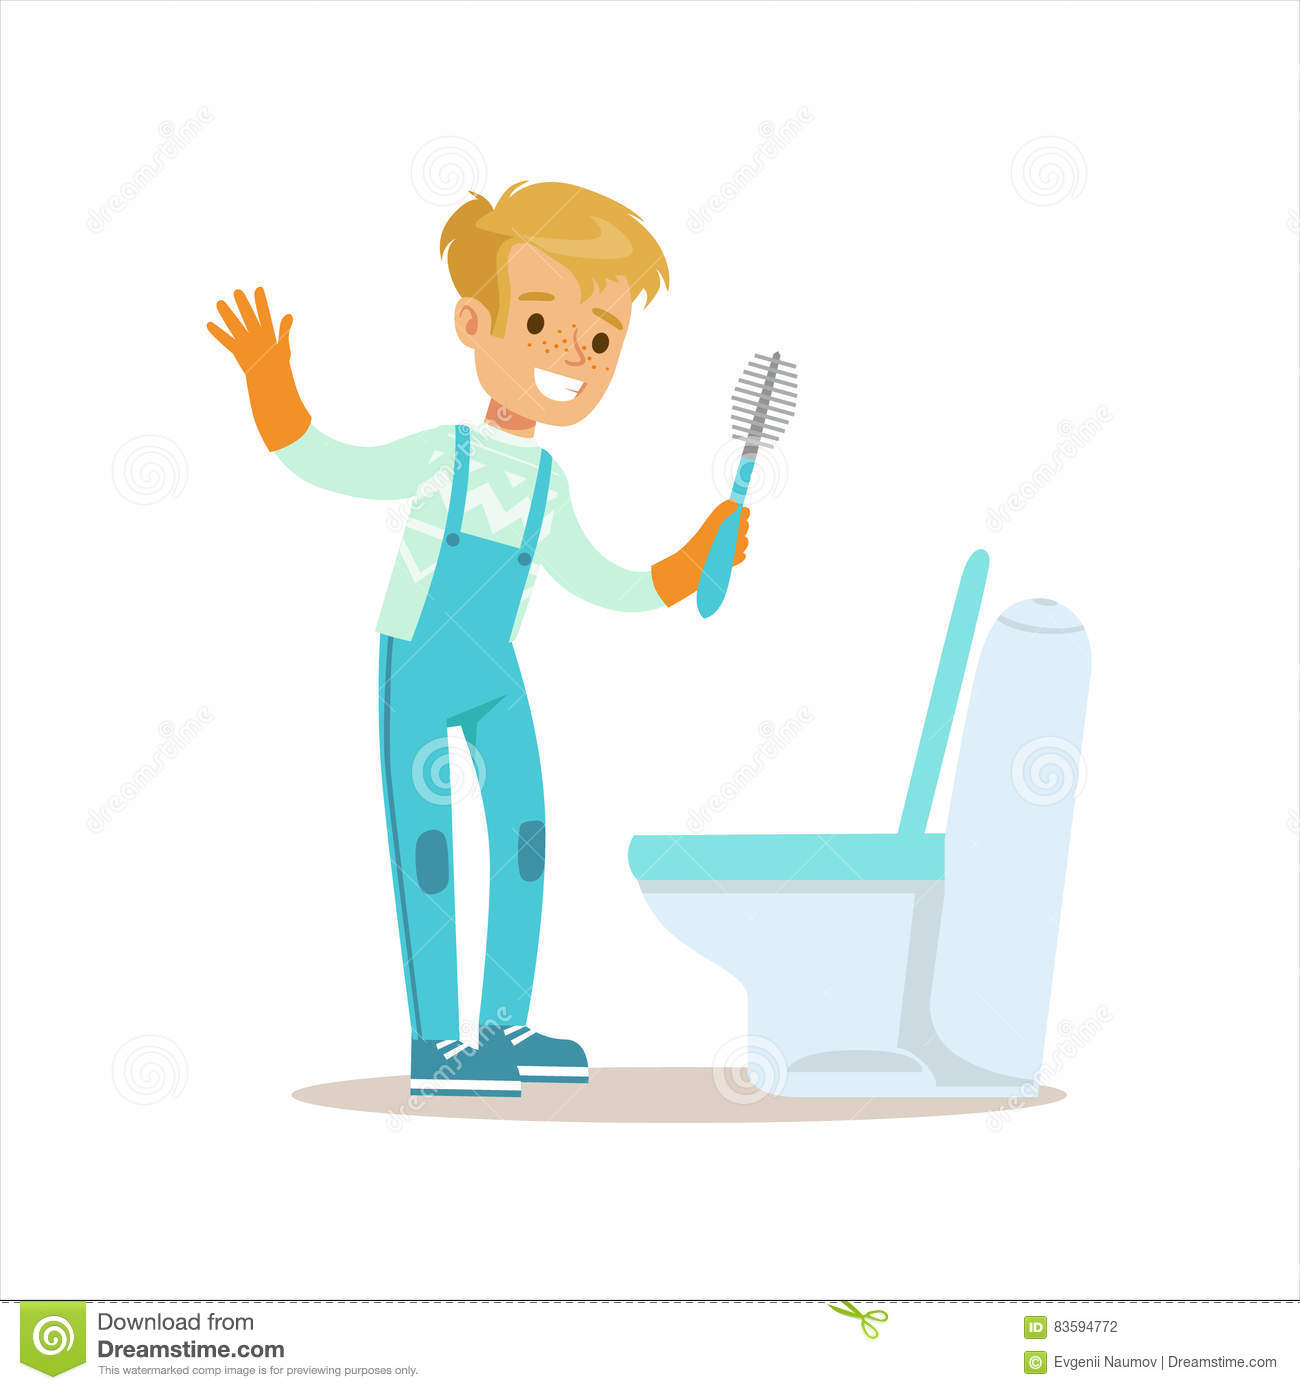 Boy In Gloves Cleaning Toilet With Brush Smiling Cartoon Kid Character Helping Housekeeping And Doing House Cleanup